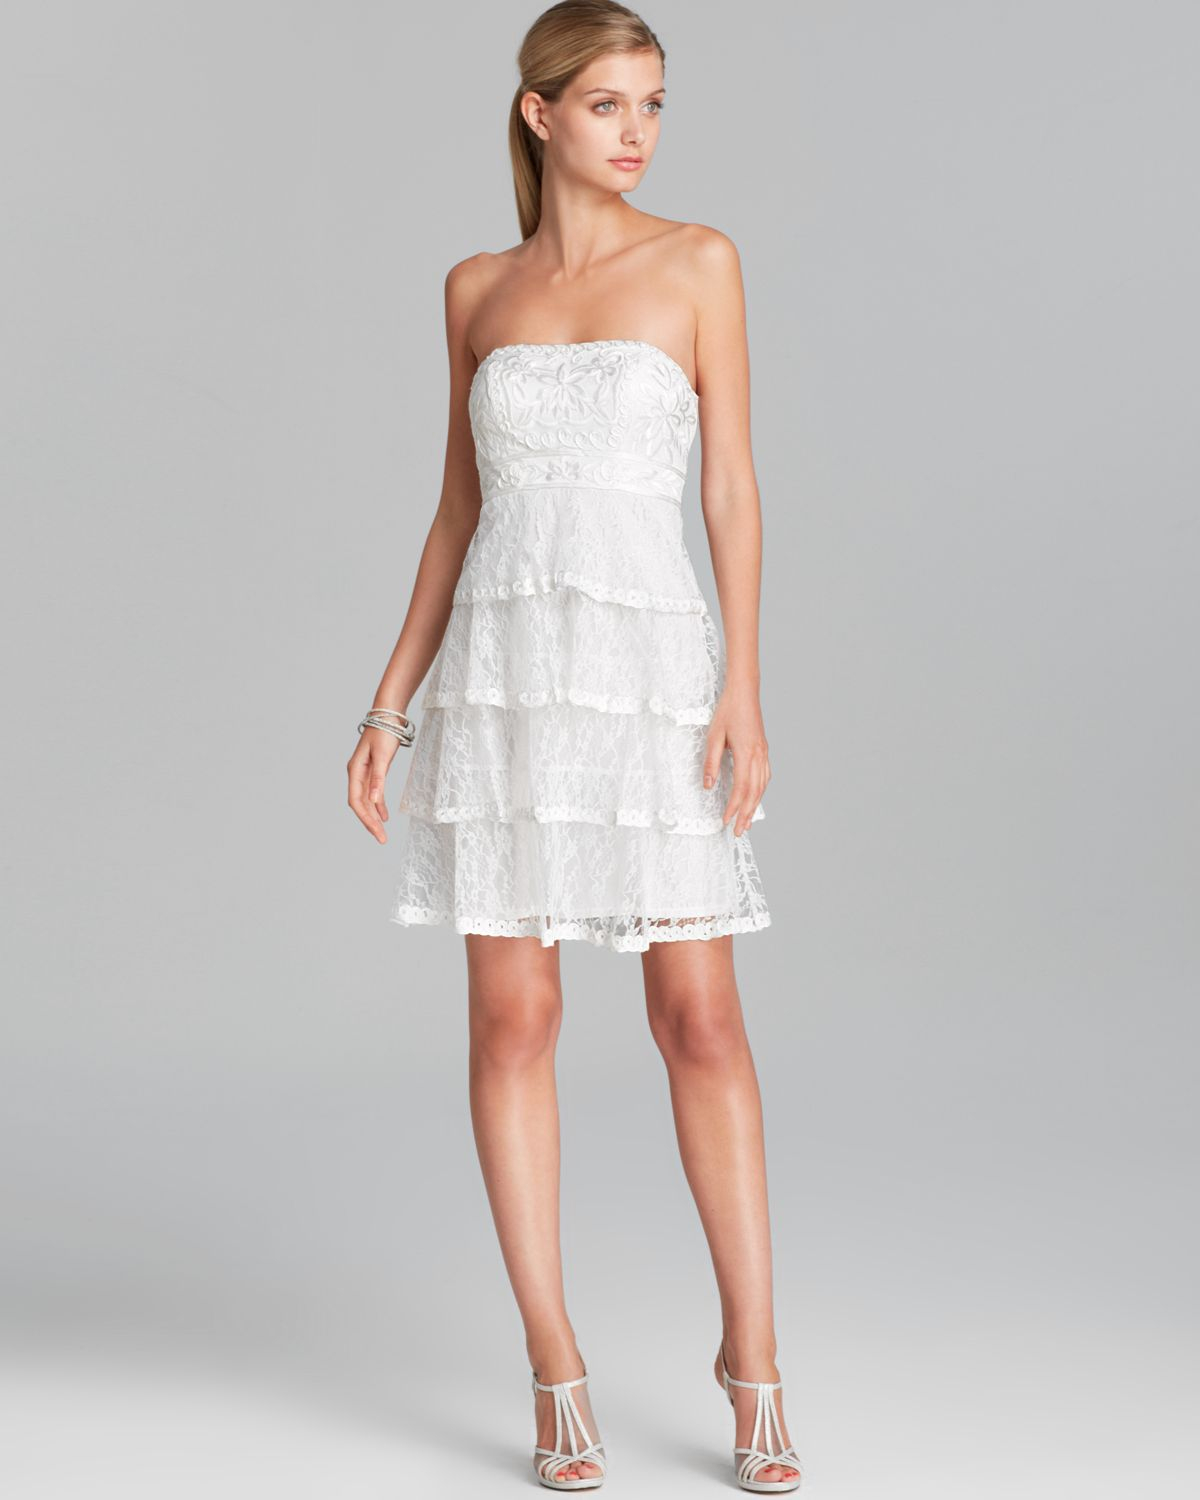 Sue wong Dress - Tiered Strapless Lace in White | Lyst